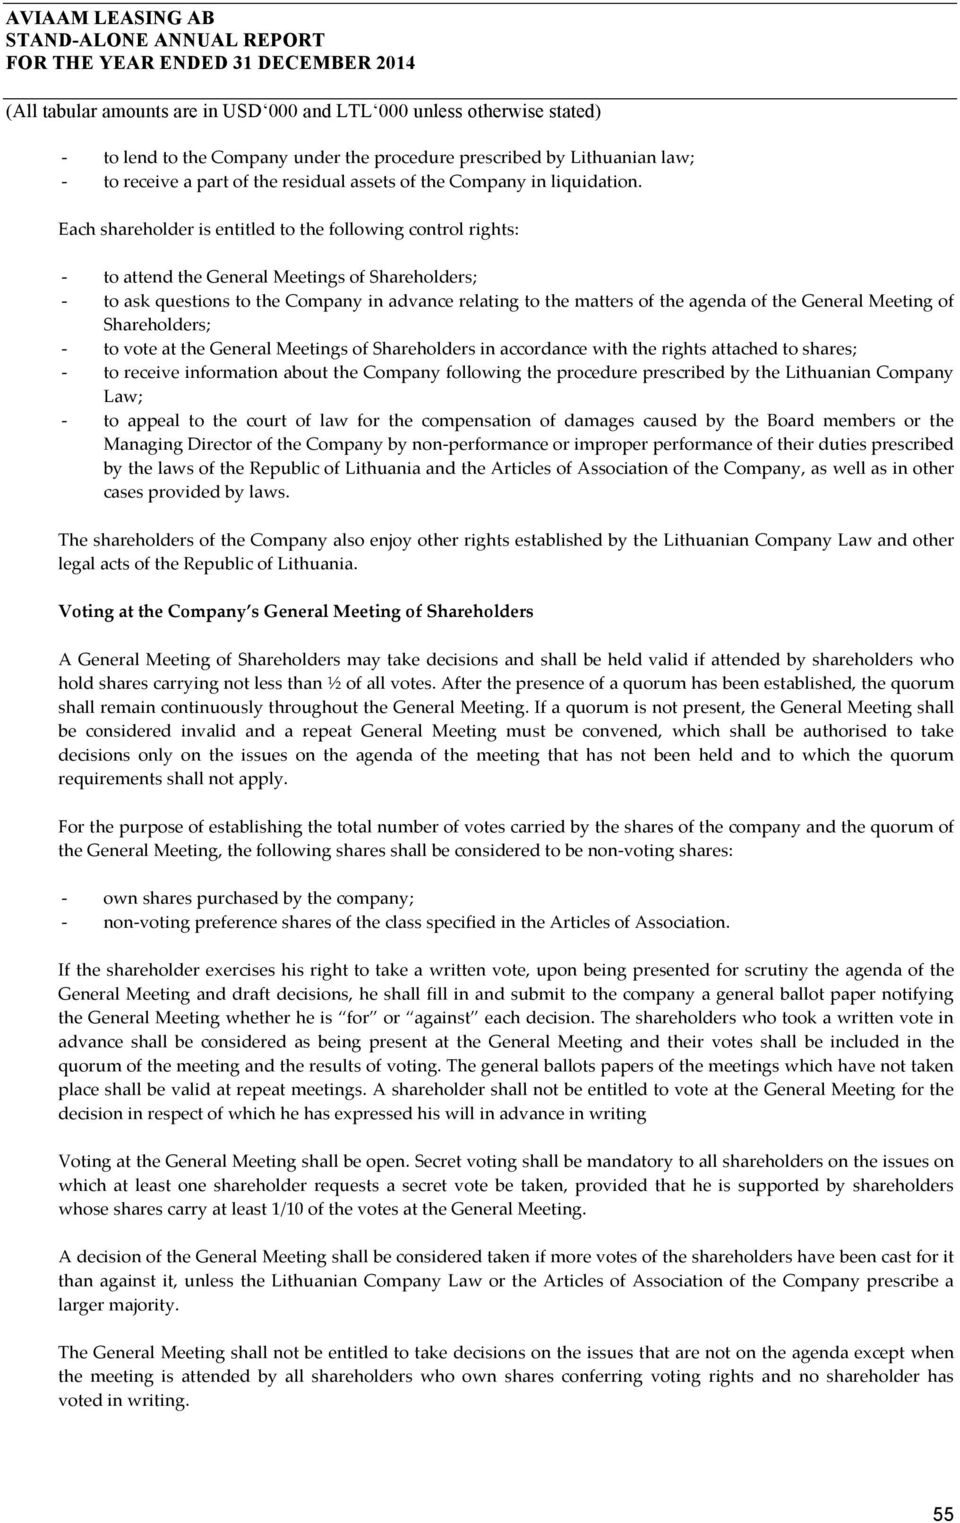 General Meeting of Shareholders; to vote at the General Meetings of Shareholders in accordance with the rights attached to shares; to receive information about the Company following the procedure